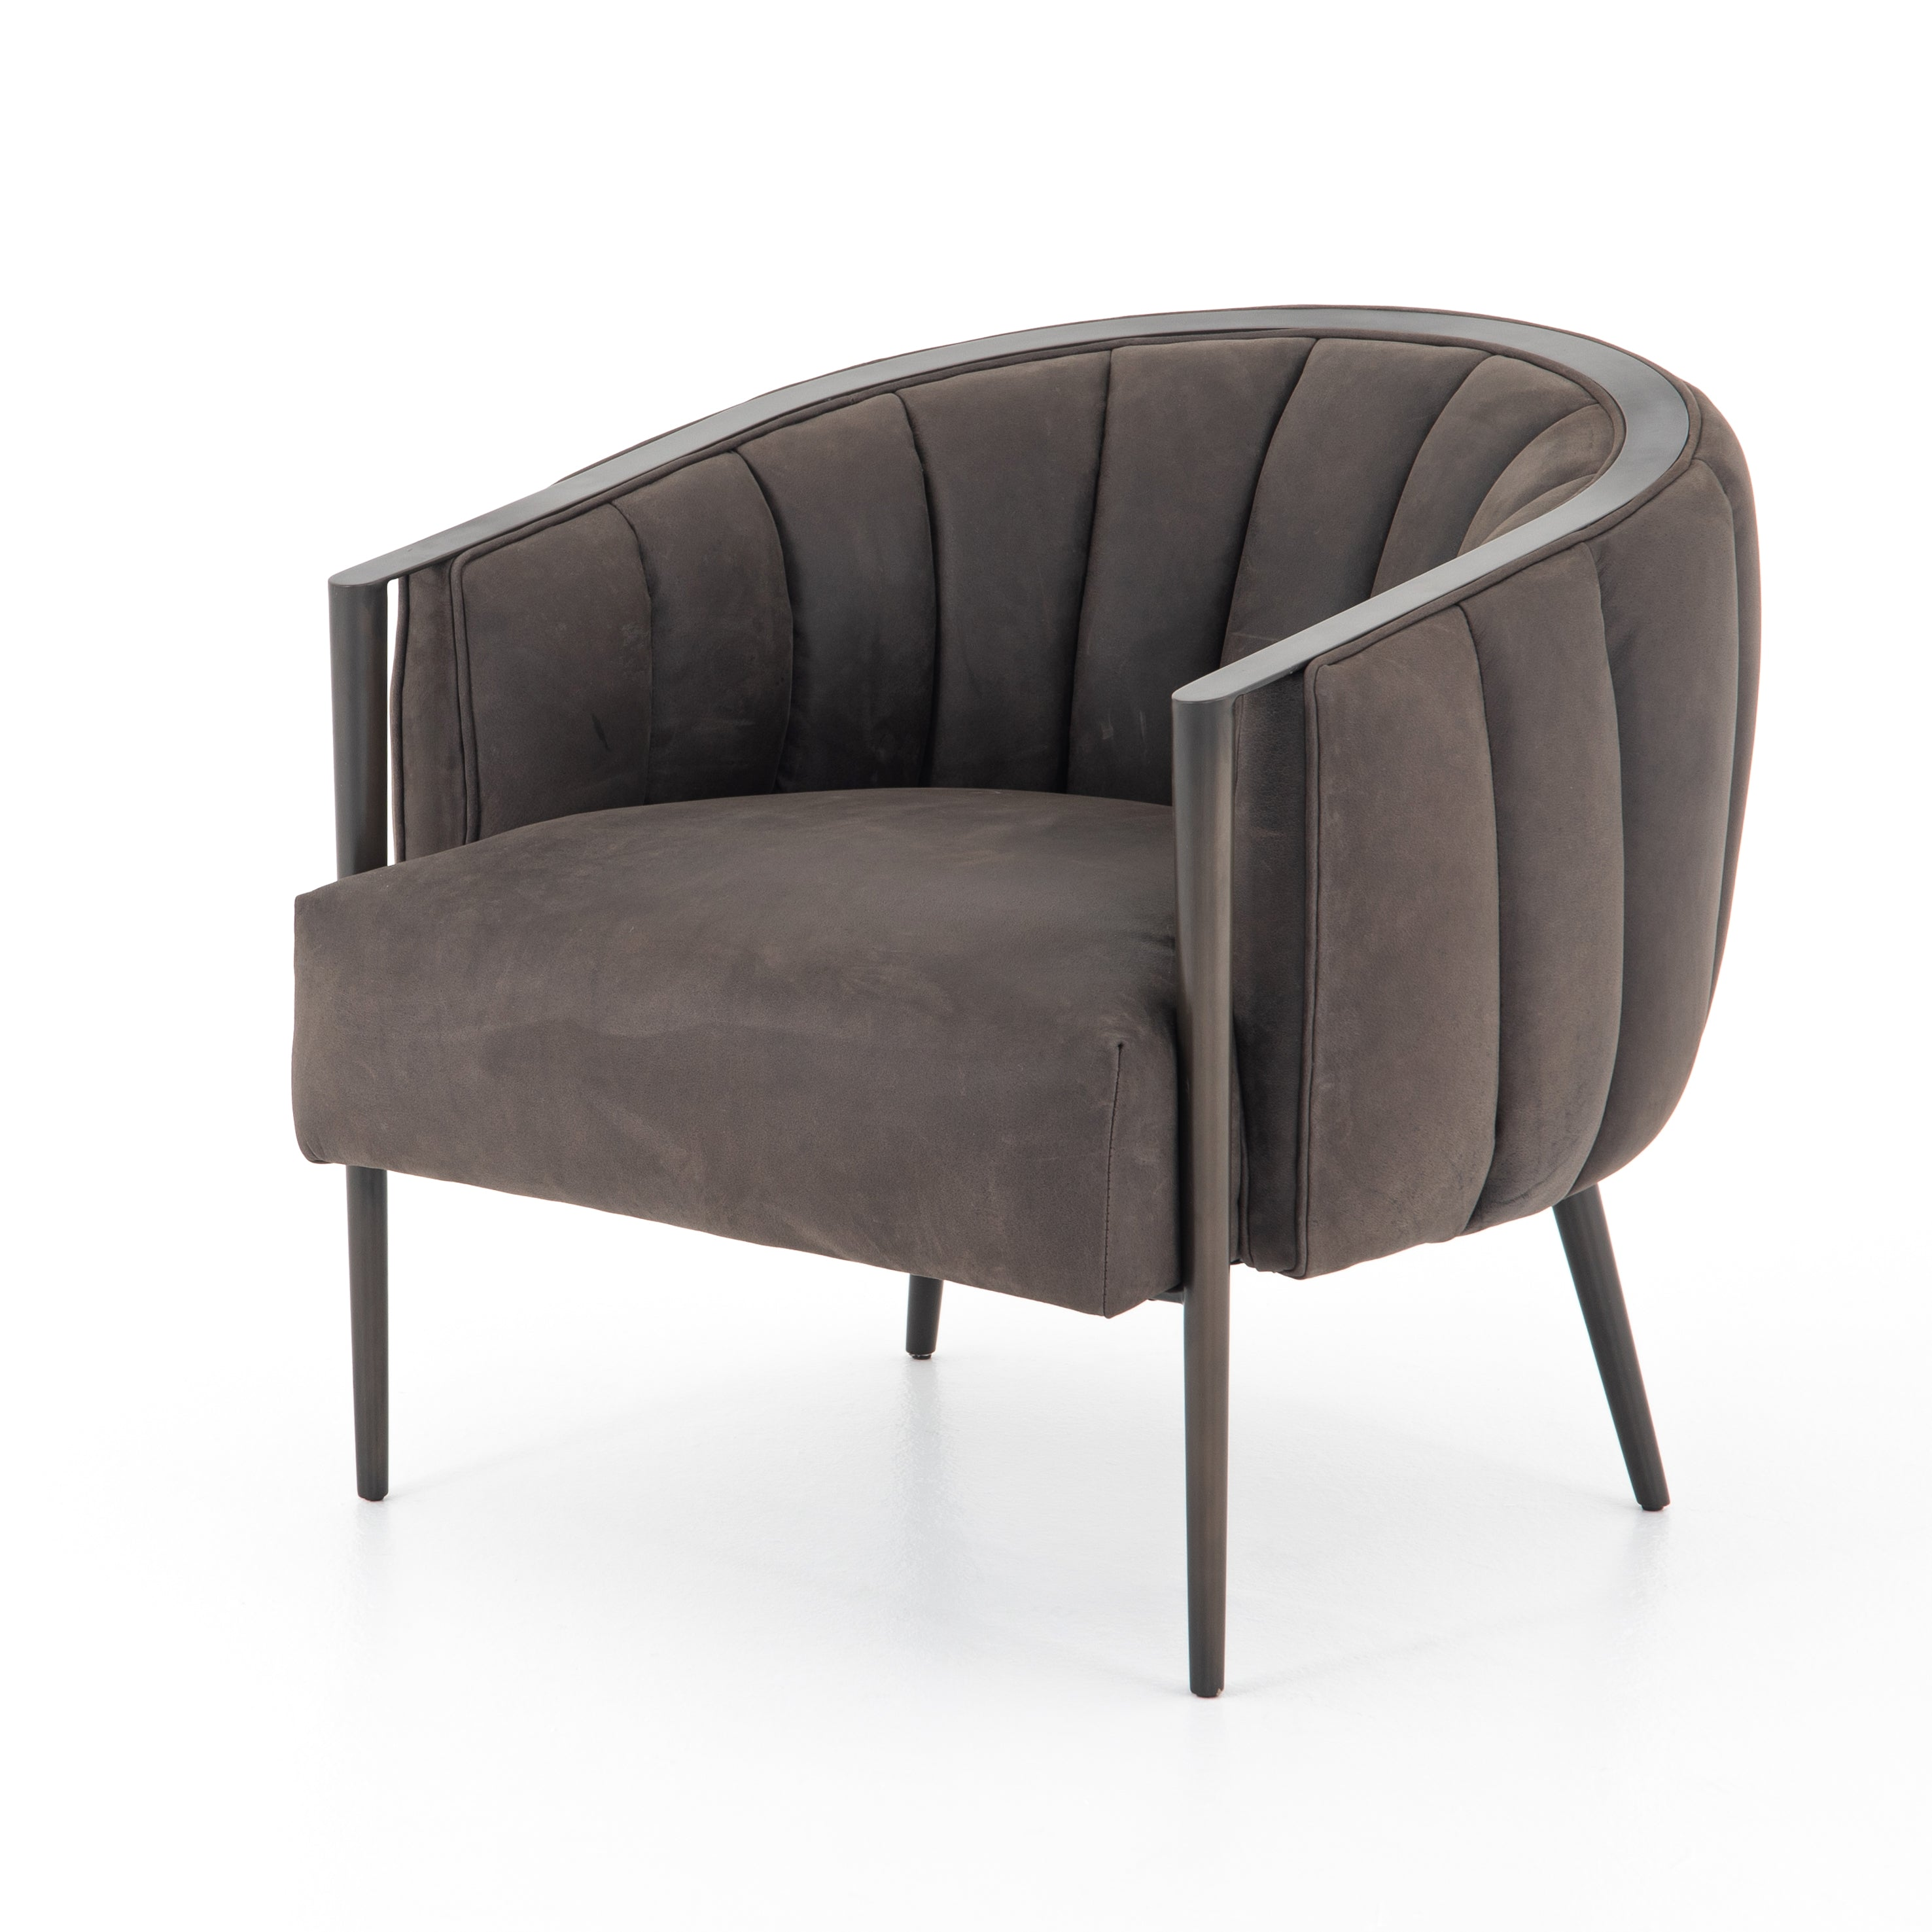 Distinguish by its curved frame, top-grain leather-covered foam cushion seating for total comfort. Finished in gunmetal, radiated back legs add a carefully designed structure finishing touch